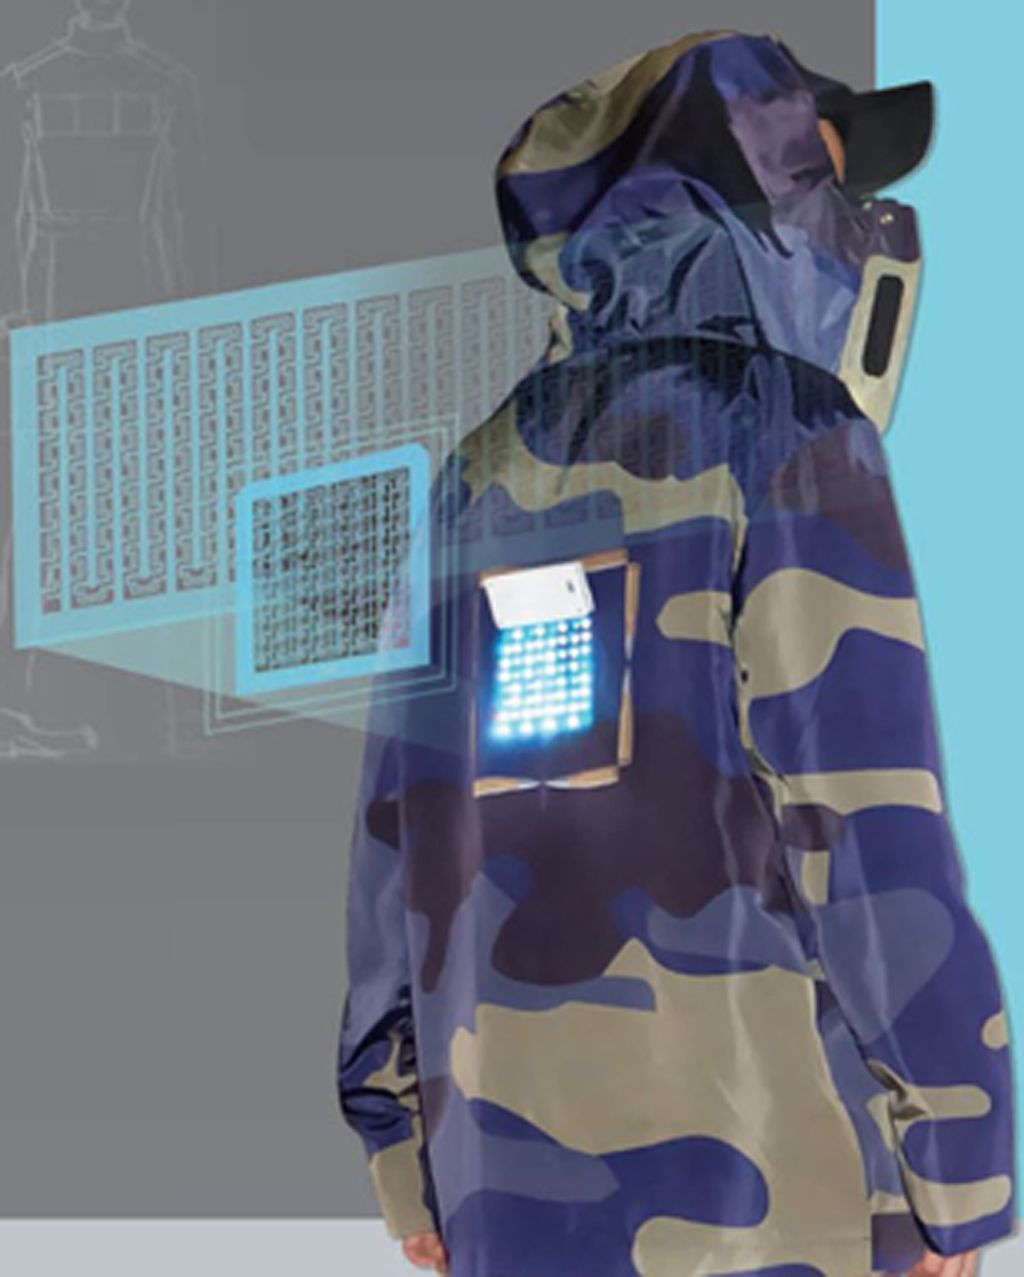 Embedded Smart Textile Arrays Display Module